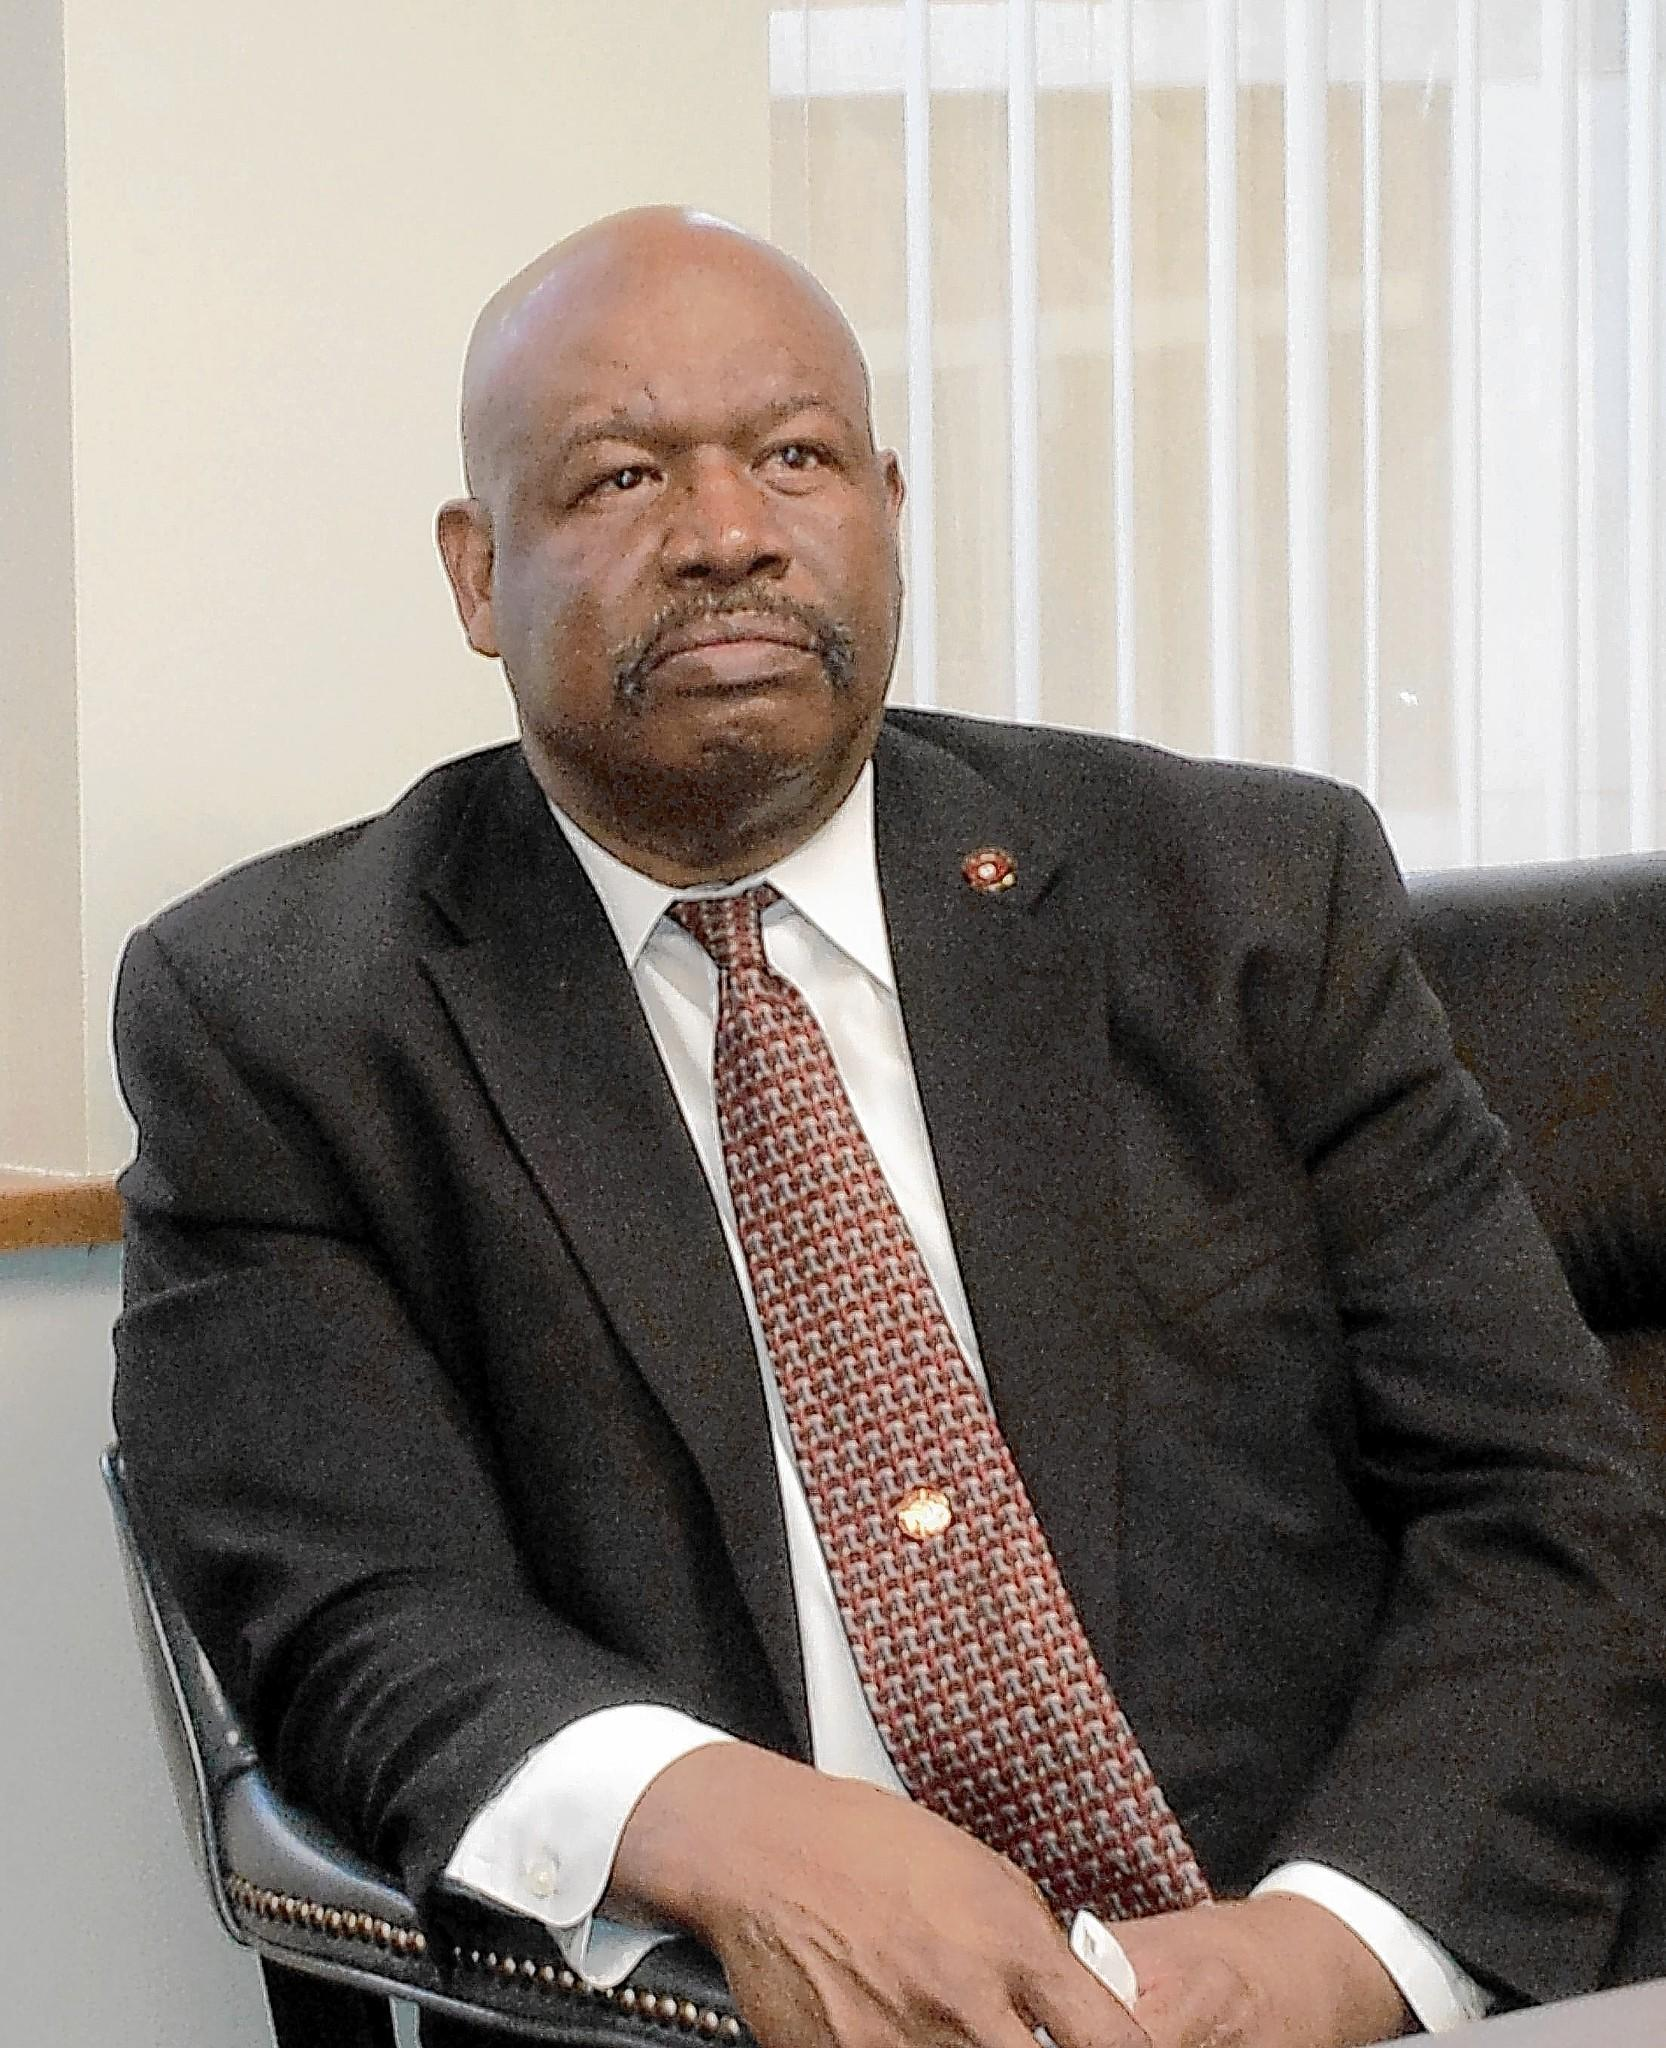 Gregory Lawrence, who was terminated as acting chief of the BWI Thurgood Marshall Airport' fire and rescue department last week, said Monday that he plans to challenge the decision.